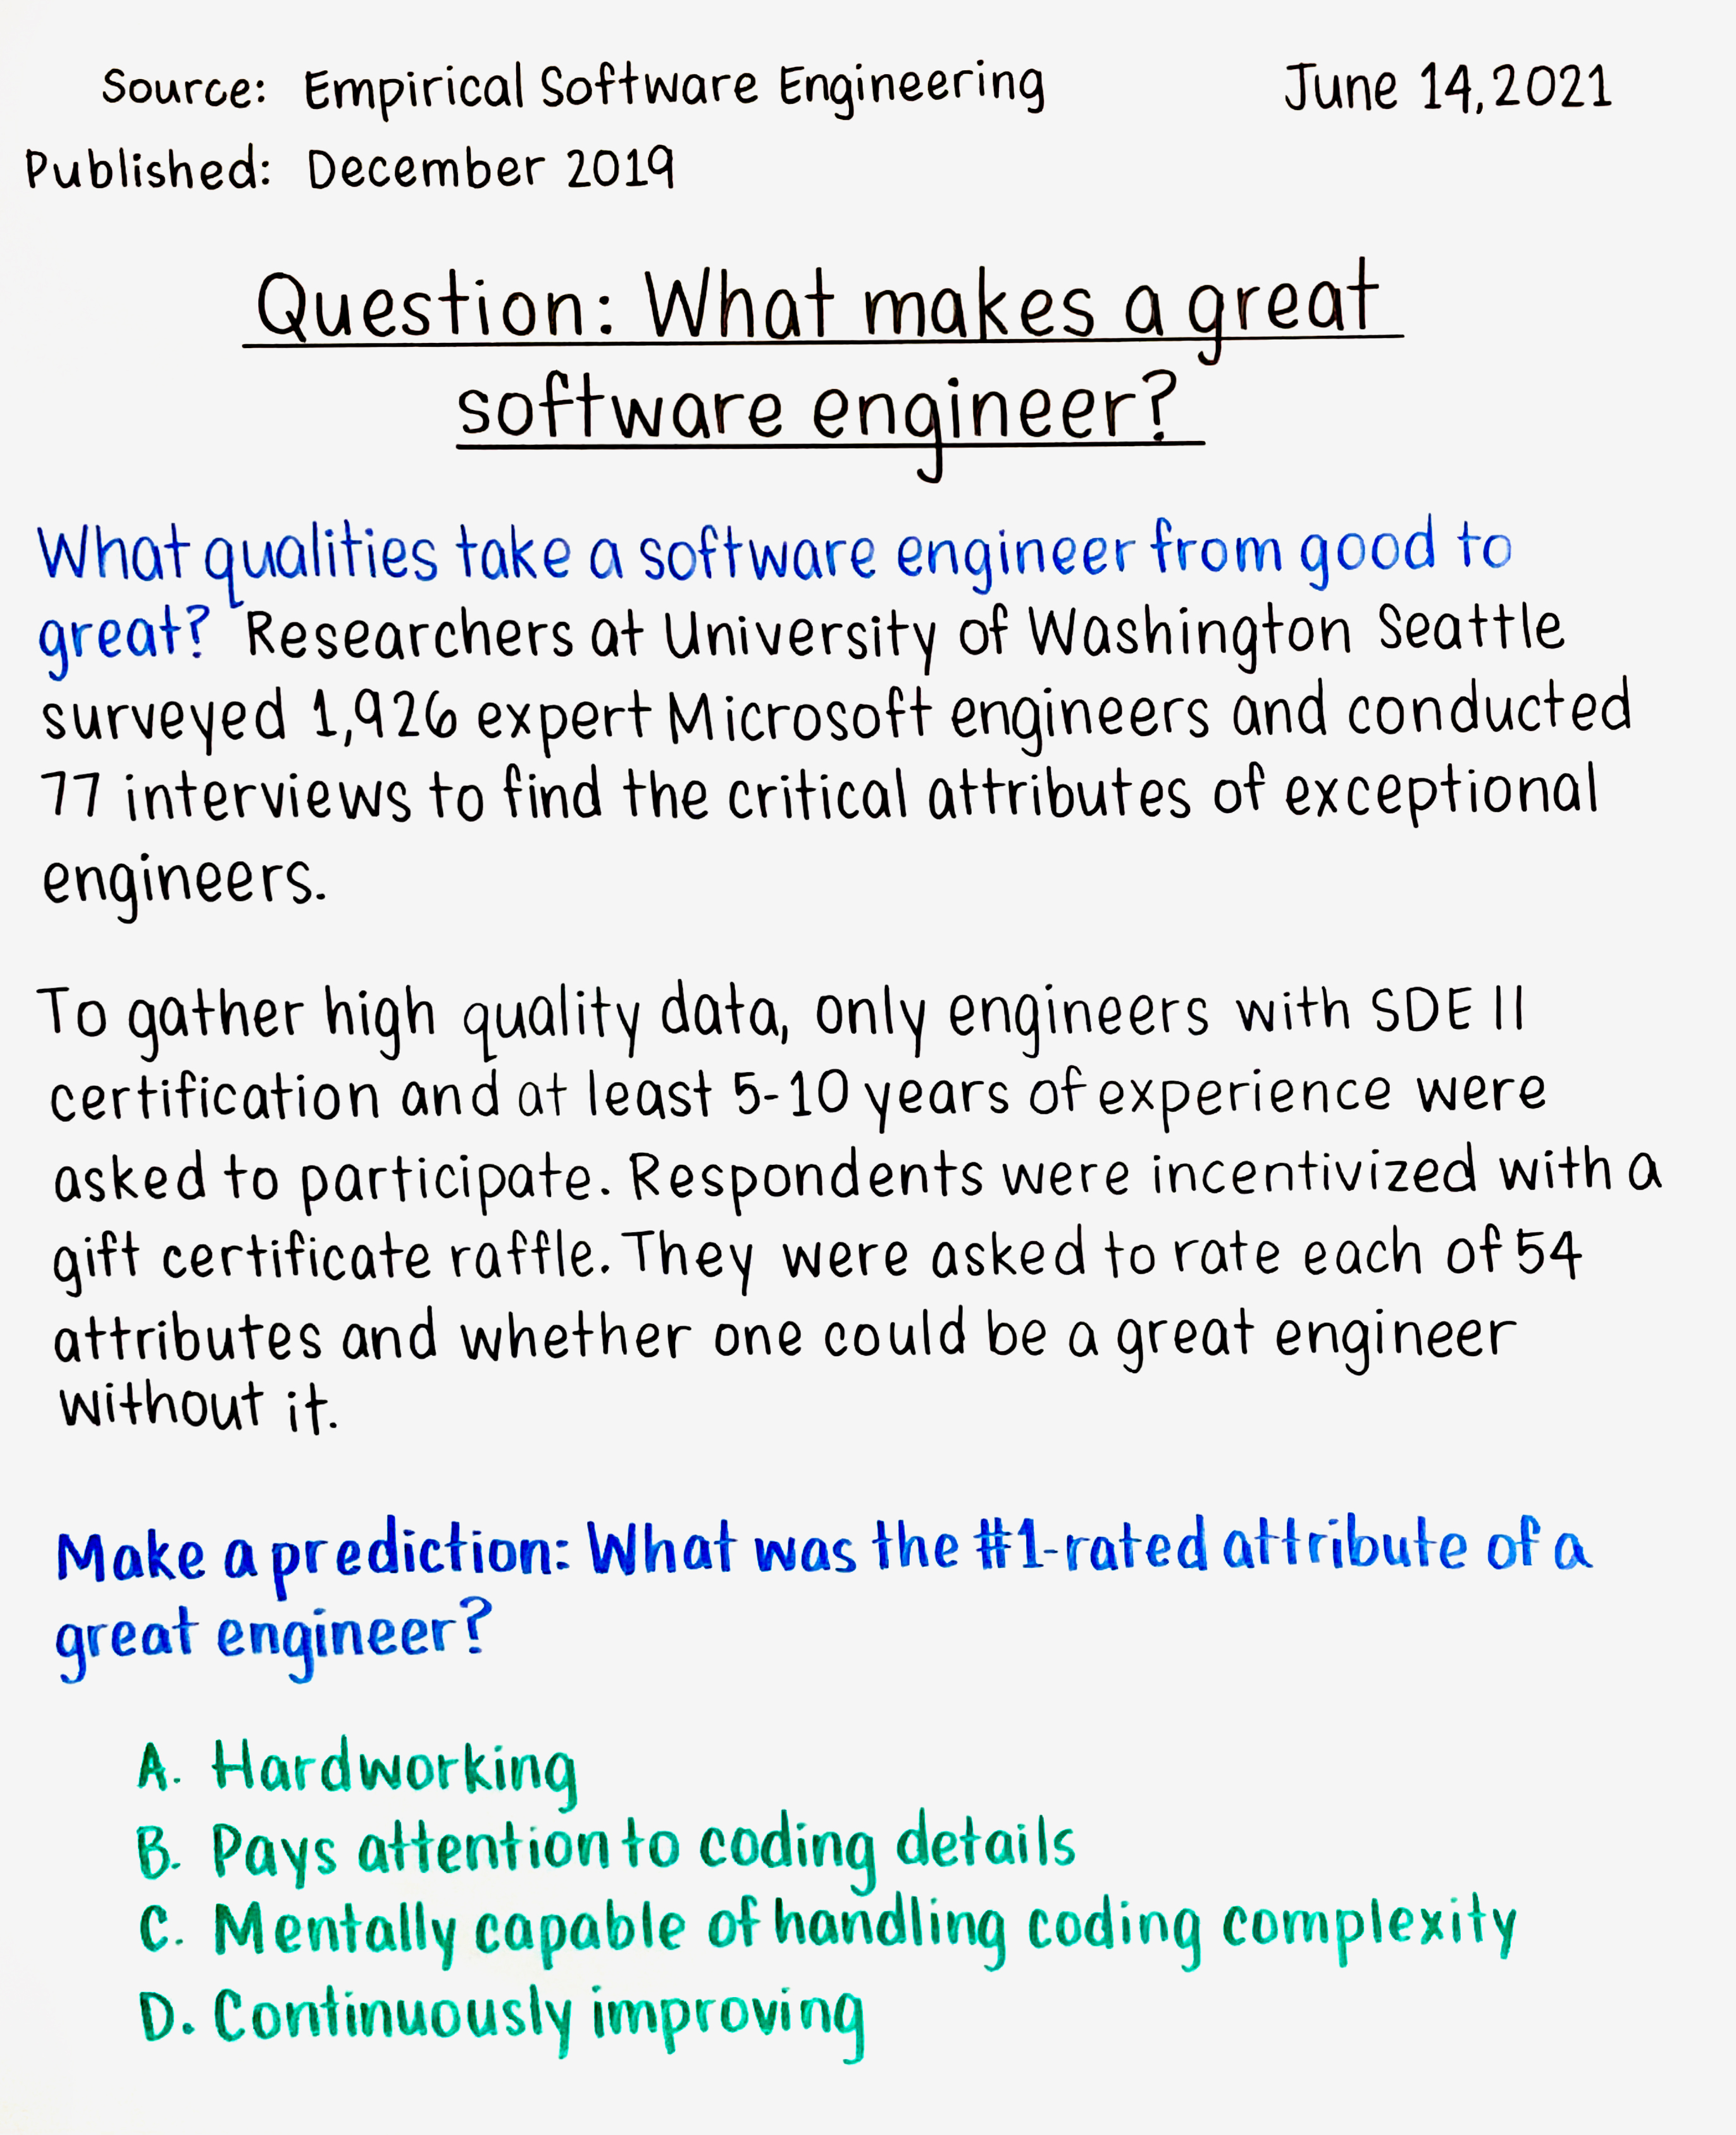 Question: What makes a great software engineer?